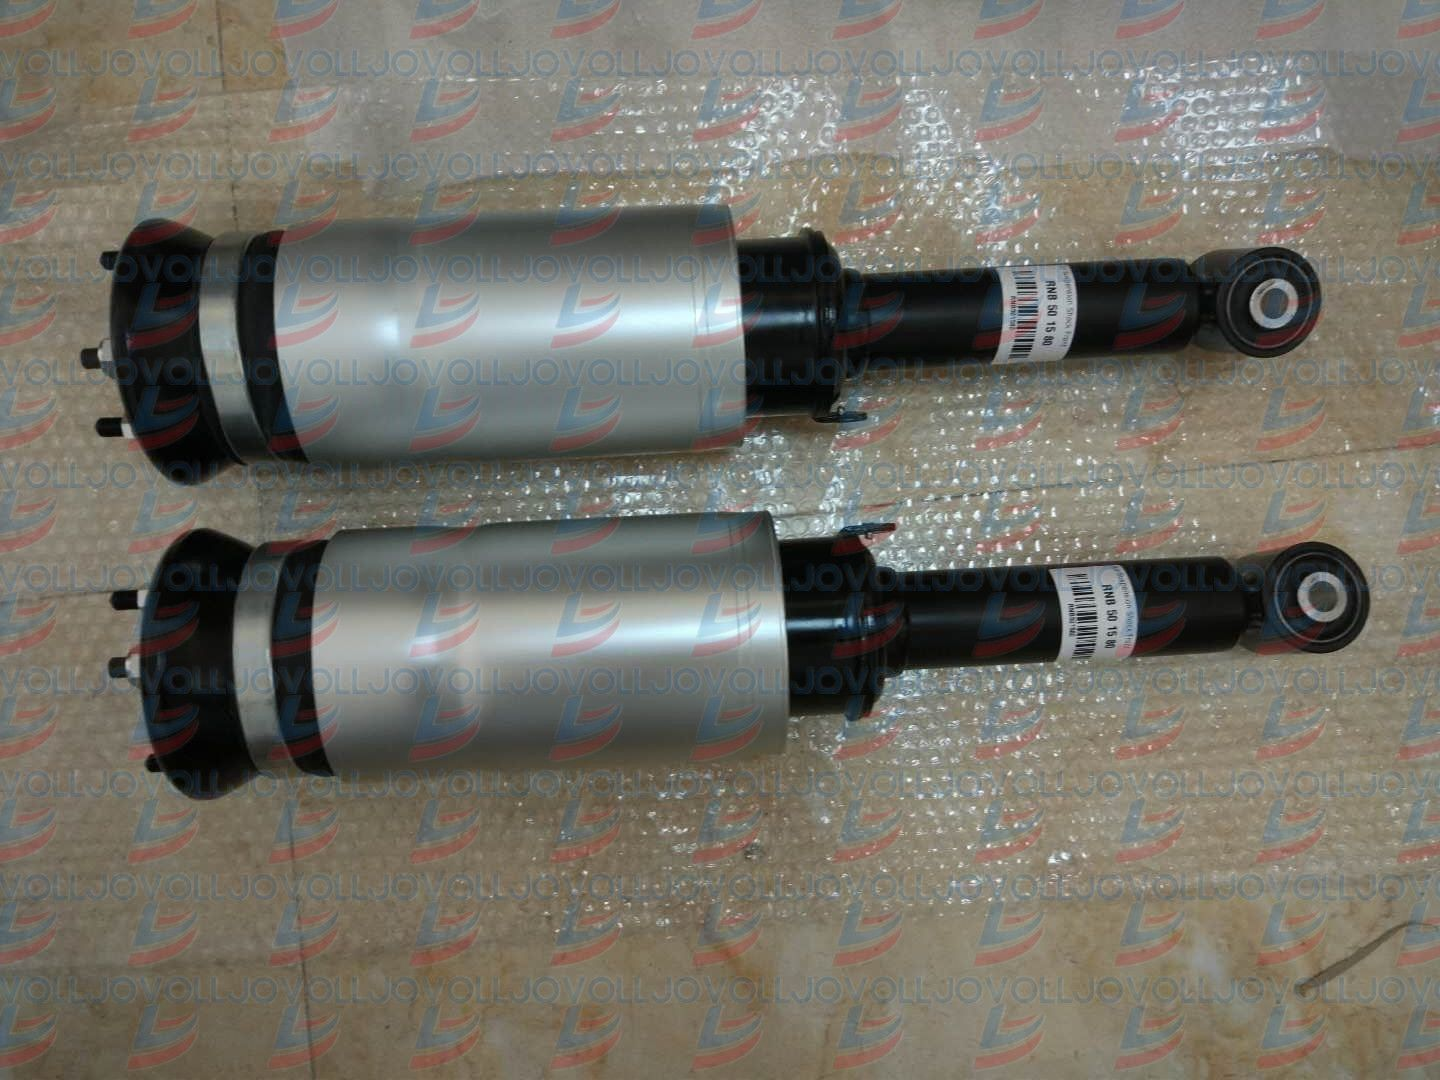 Front Air Suspension Shock Absorbers Airmatic For Land Rover Discovery 3 4 Range Rover Sport Whatsapp 86 1 Land Rover Land Rover Discovery Range Rover Sport